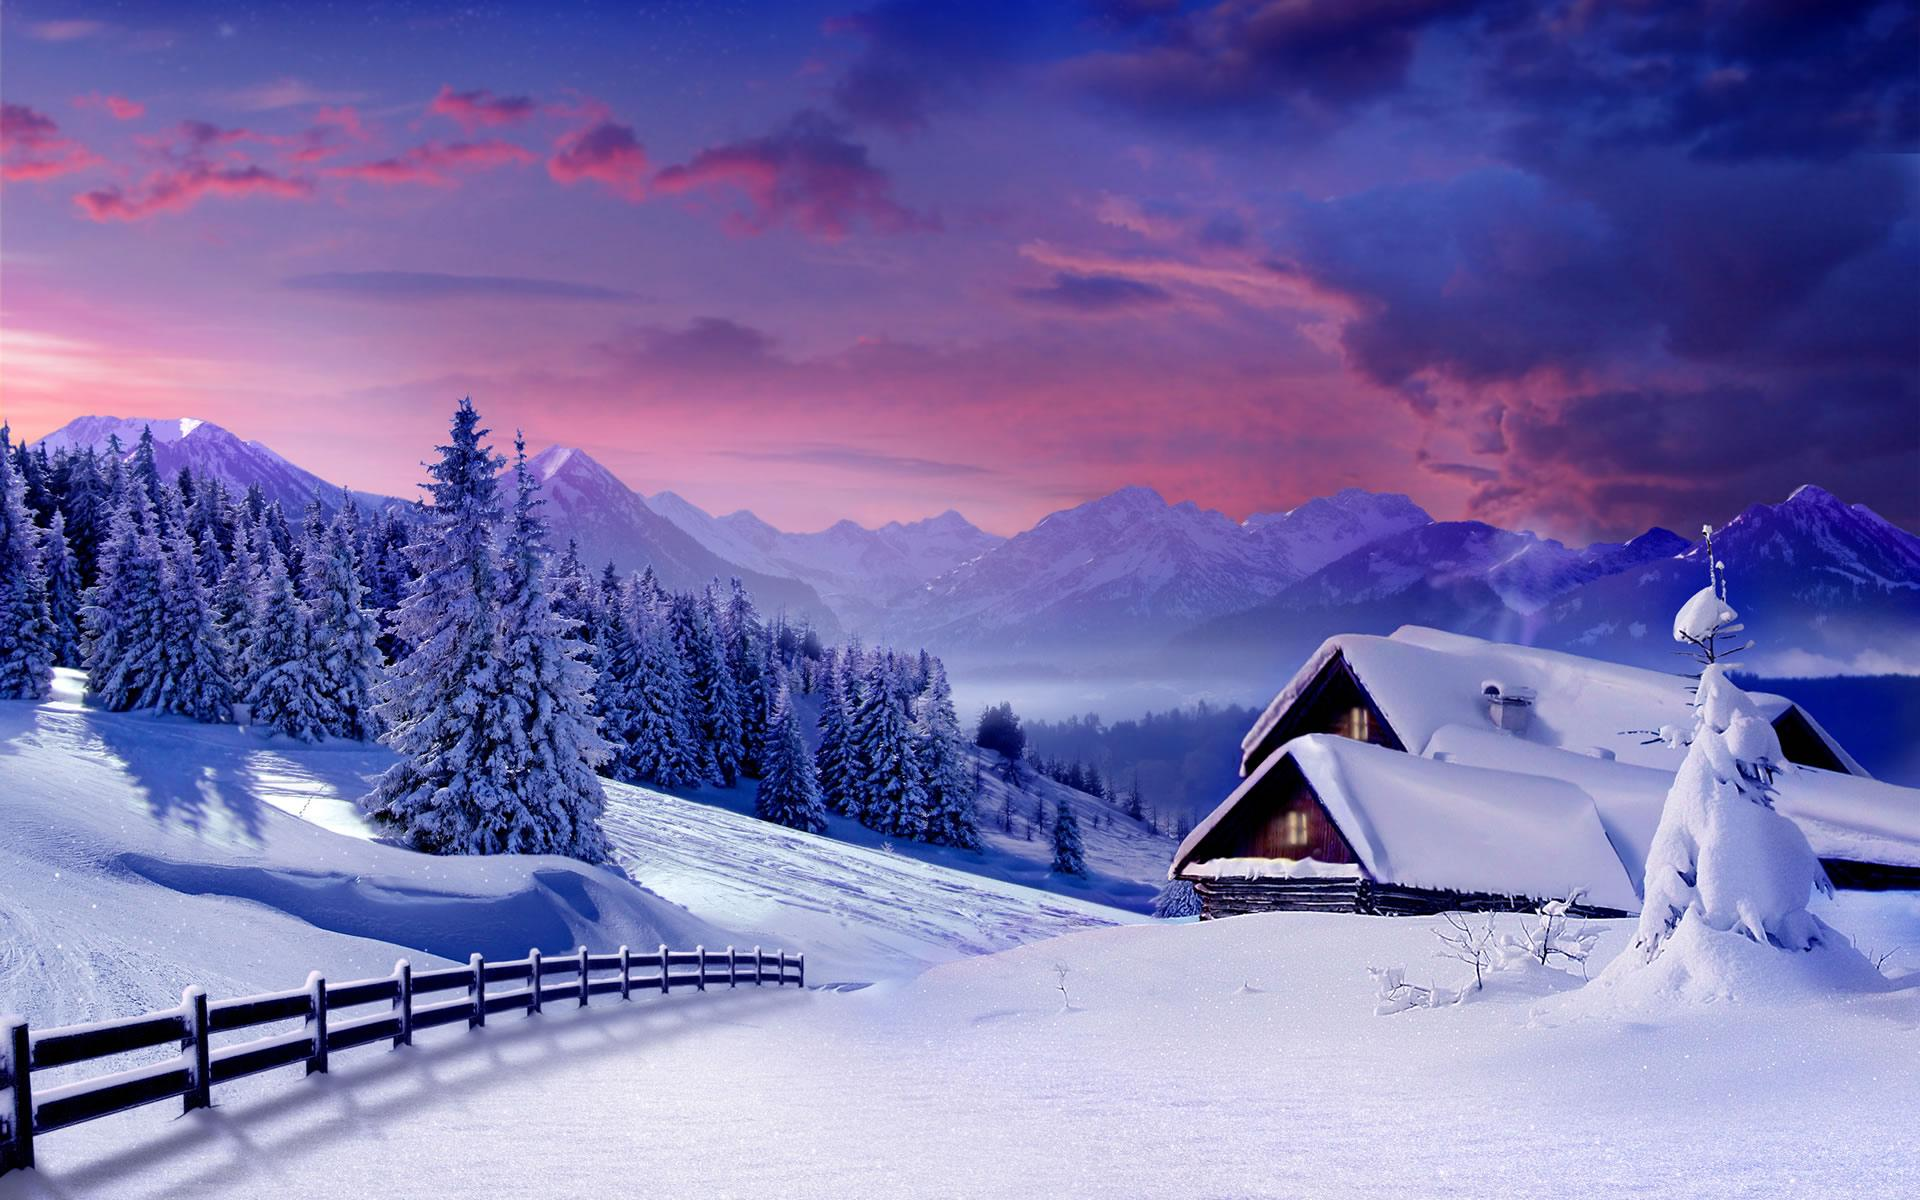 Winter Wallpapers, Awesome Winter Wallpaper,